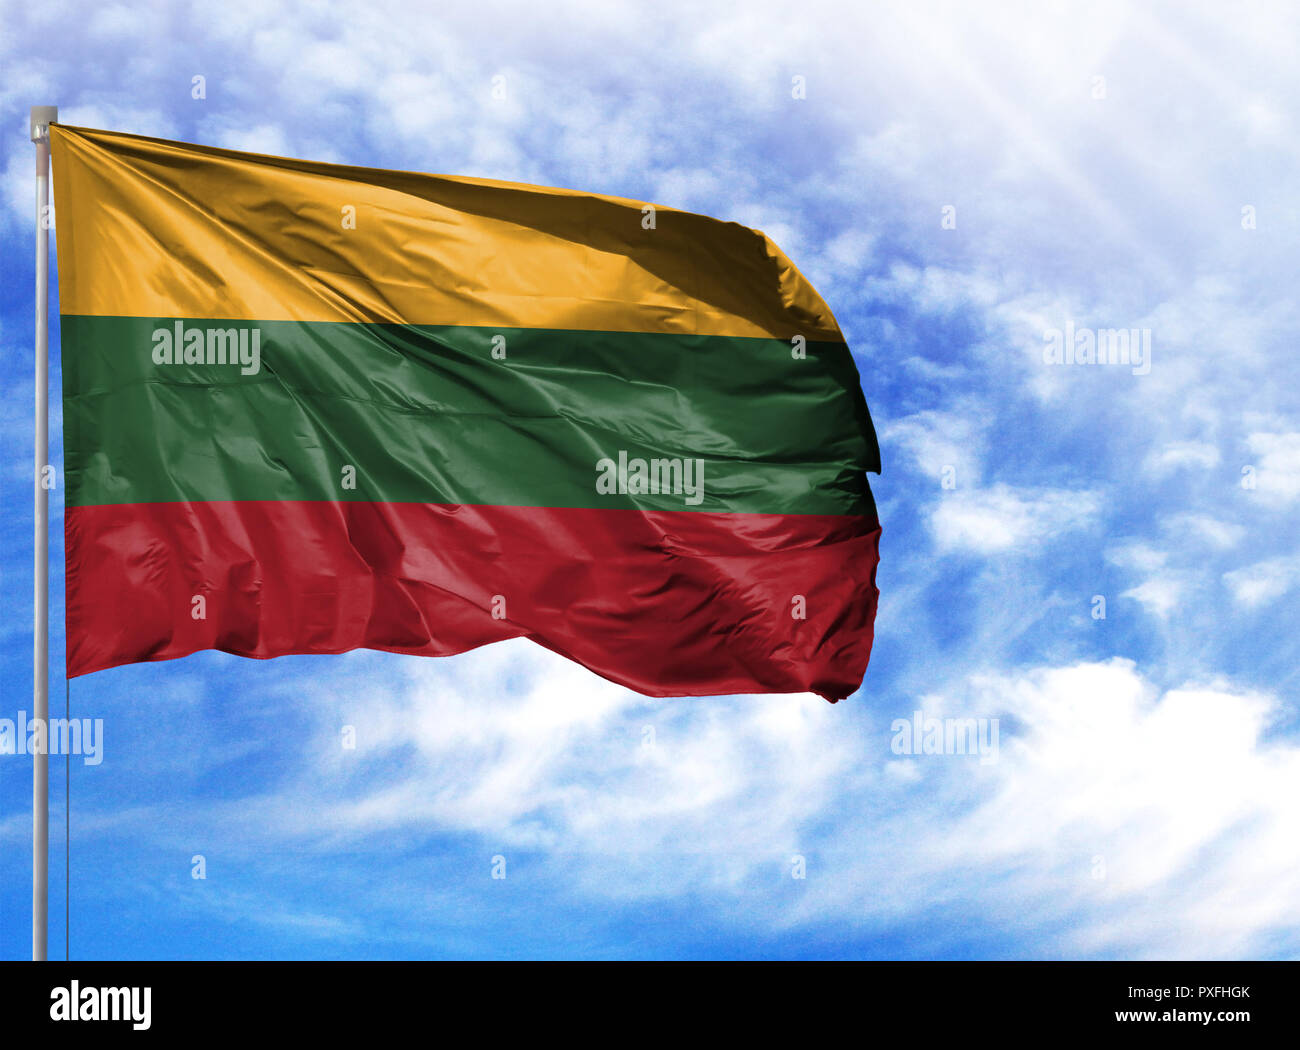 National flag of Lithuania on a flagpole in front of blue sky. - Stock Image